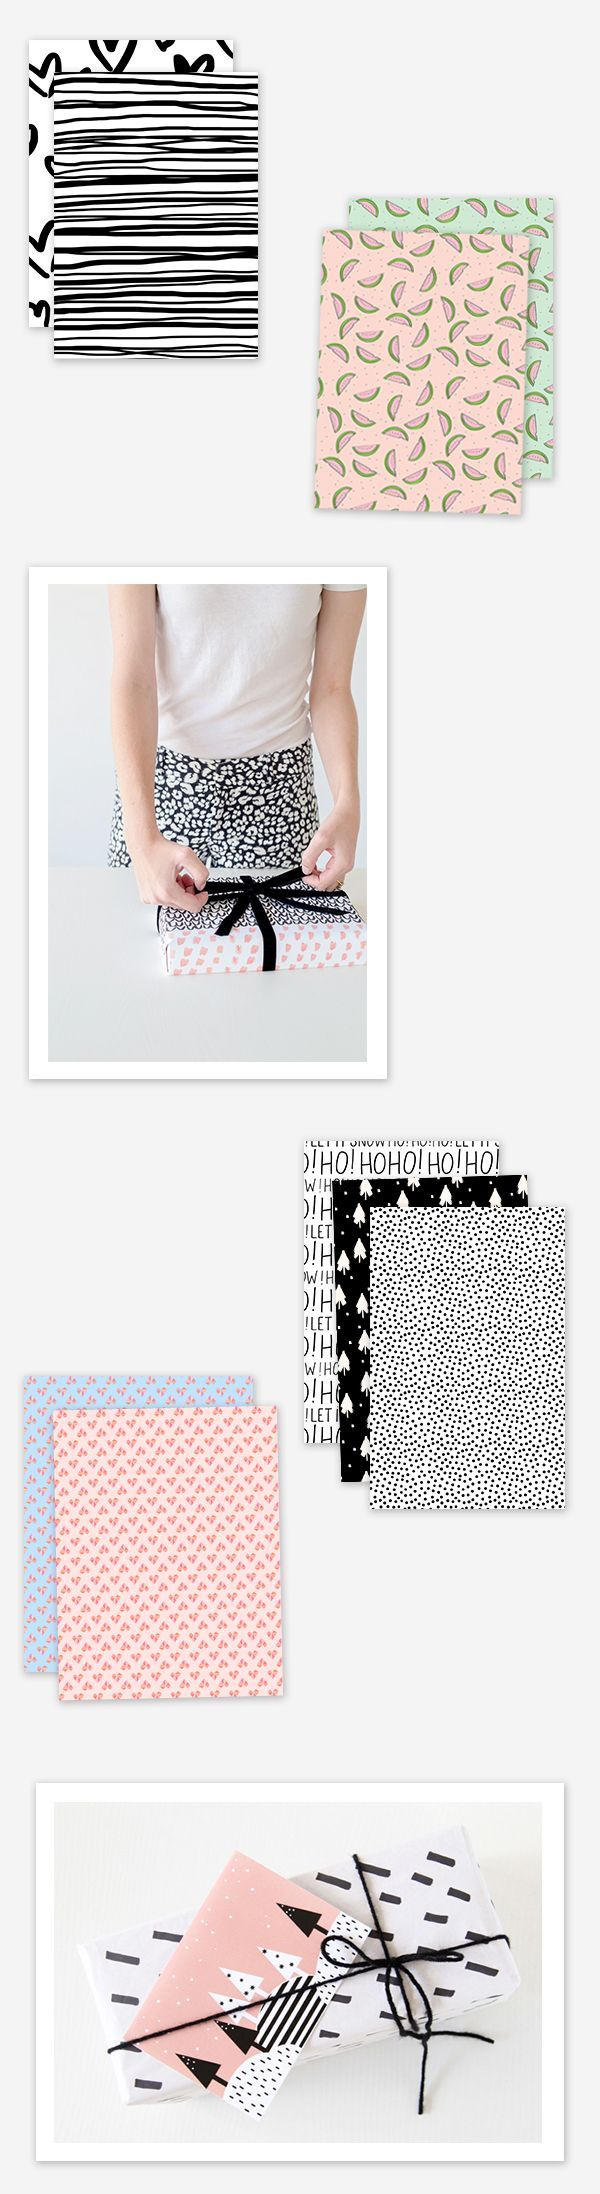 When it comes to gift wrapping (which is one of my very favorite things to do), ...